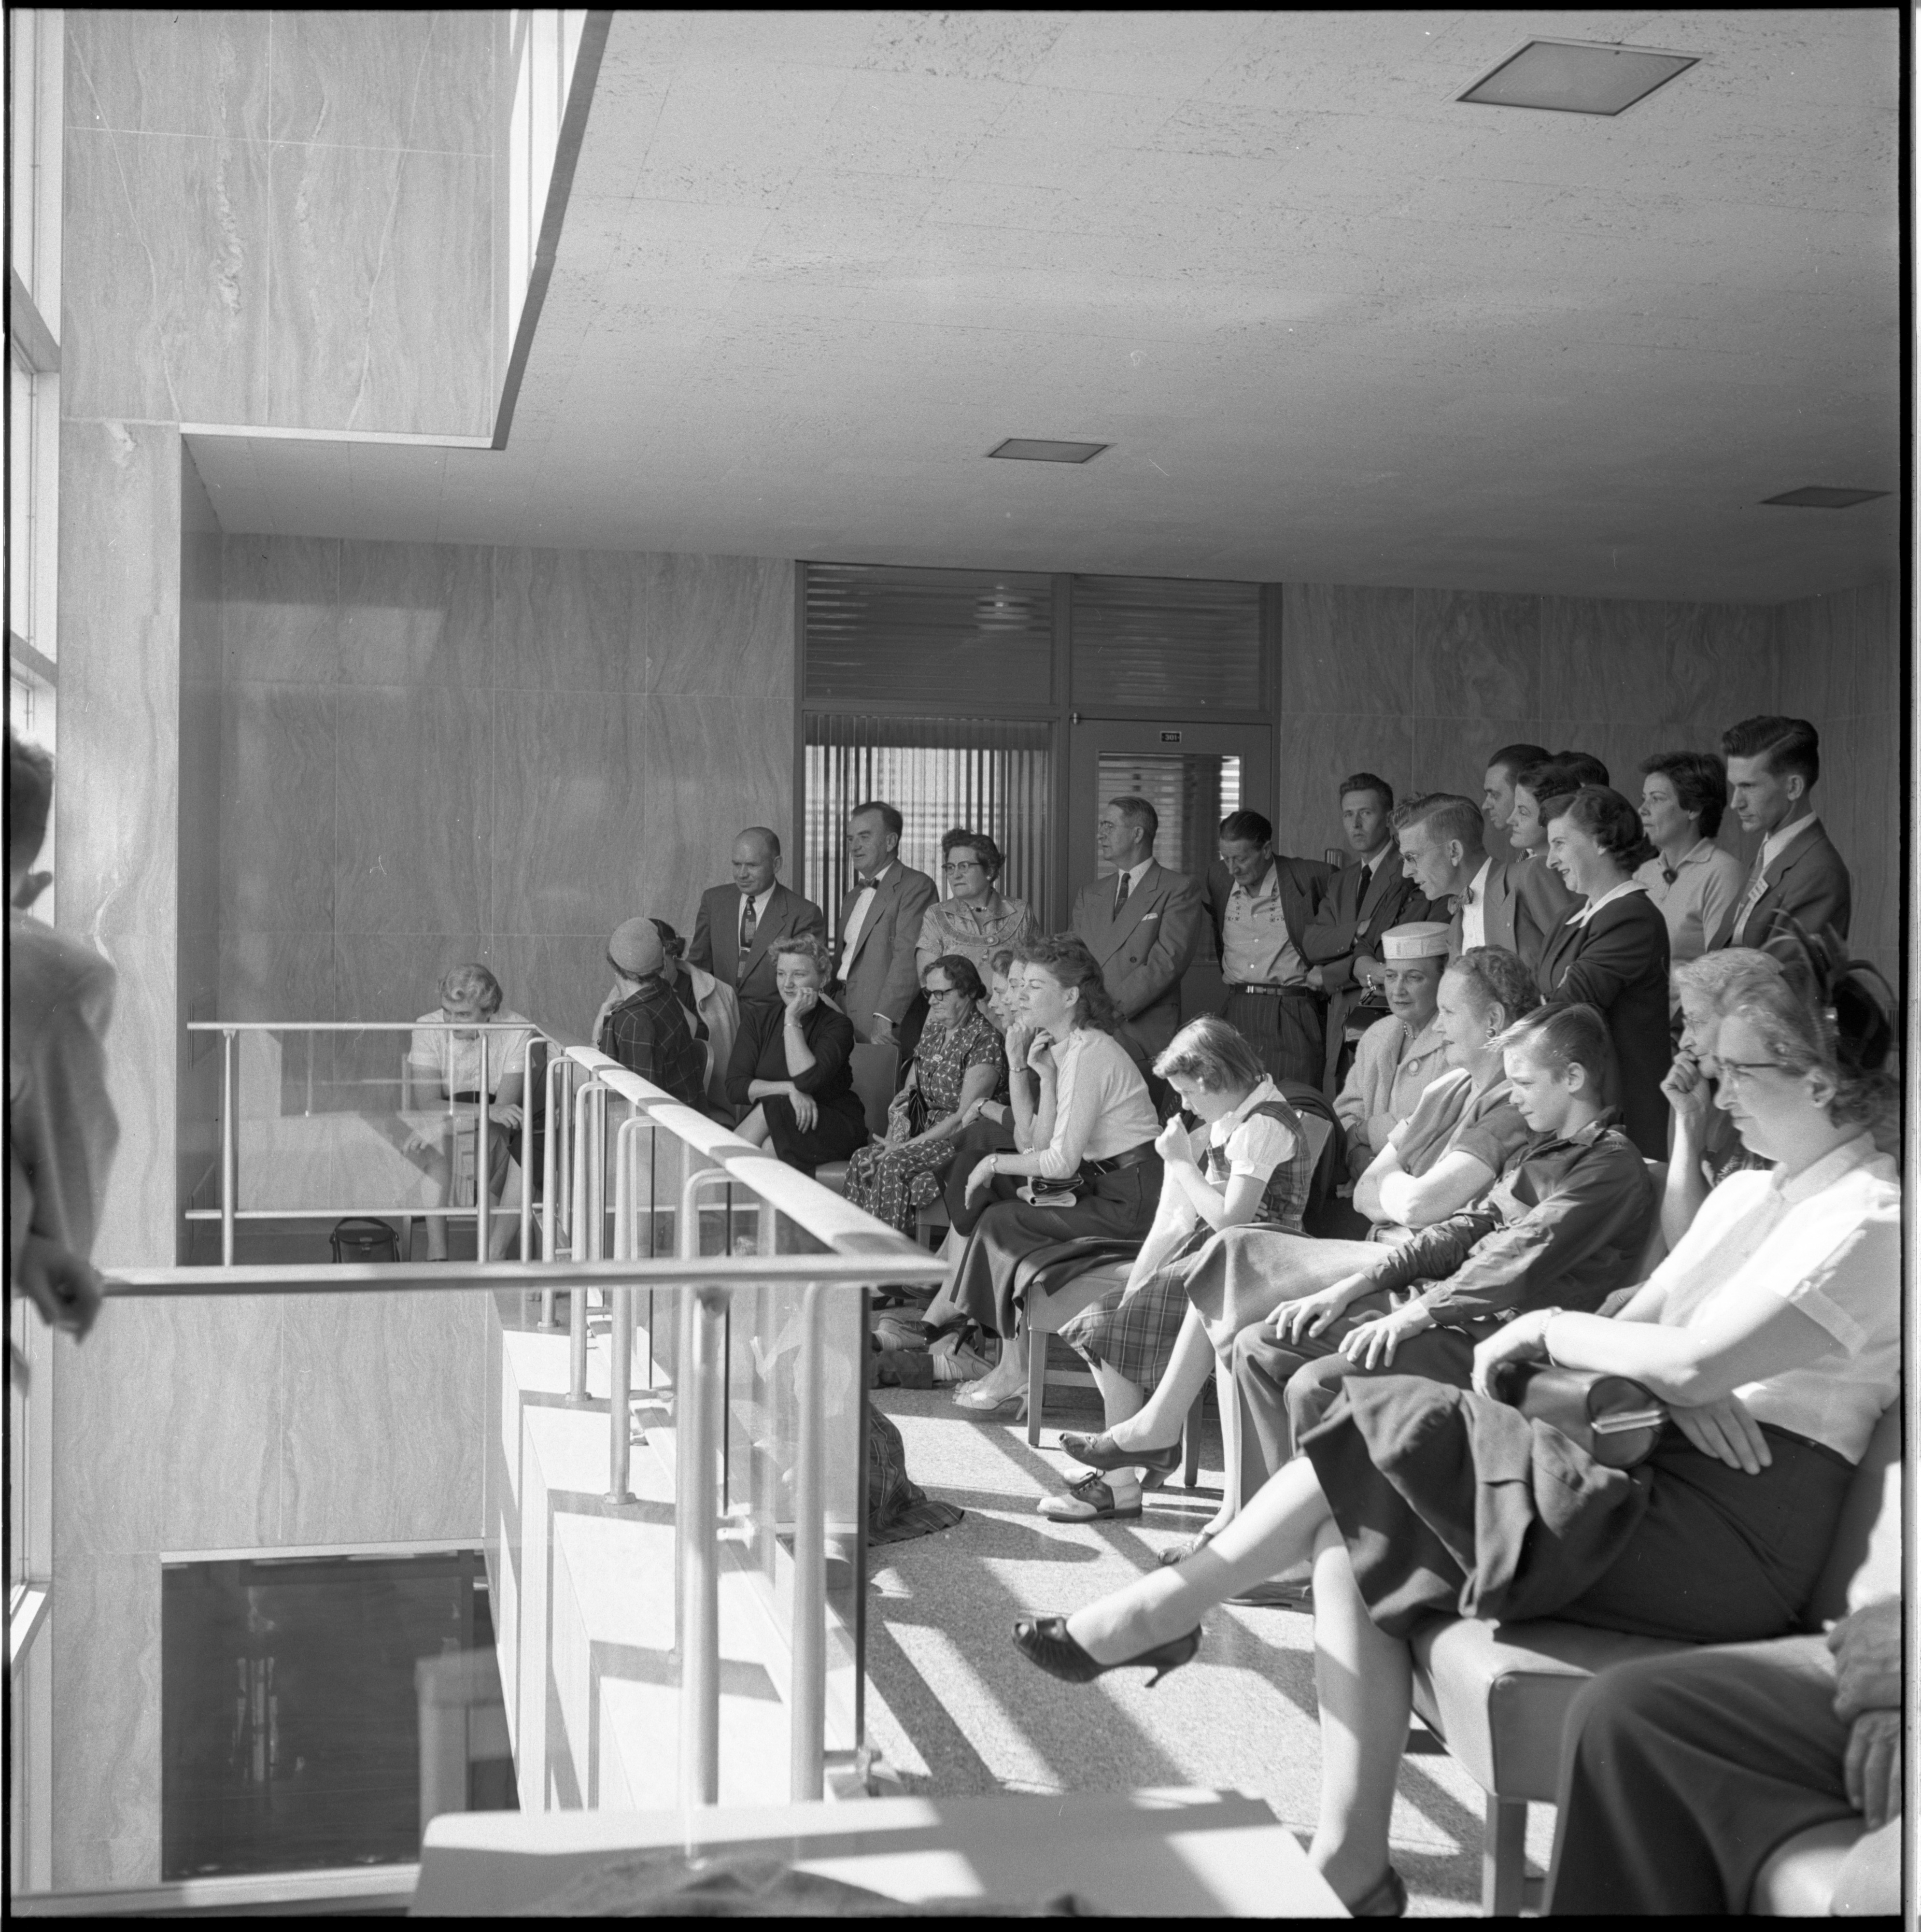 Spectators Watch The Washtenaw County Building Dedication Ceremony From Inside The Building, October 1956 image